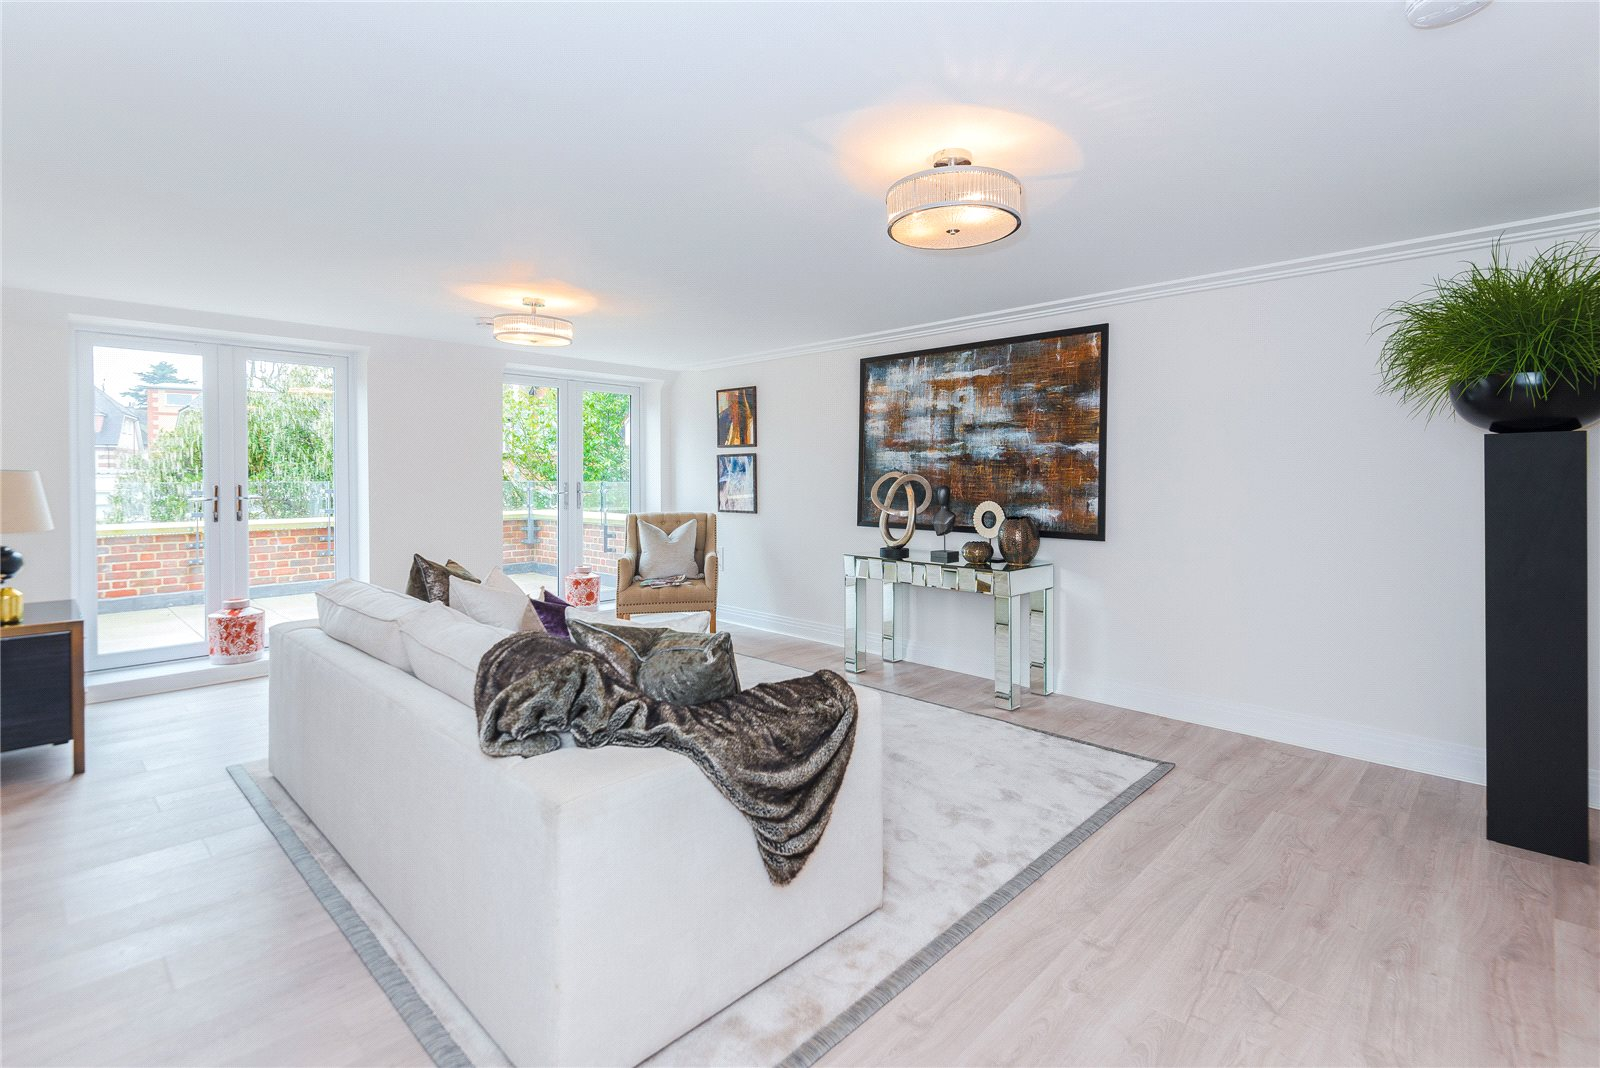 Additional photo for property listing at Scholars Place, South Park Drive, Gerrards Cross, Buckinghamshire, SL9 Gerrards Cross, Αγγλια